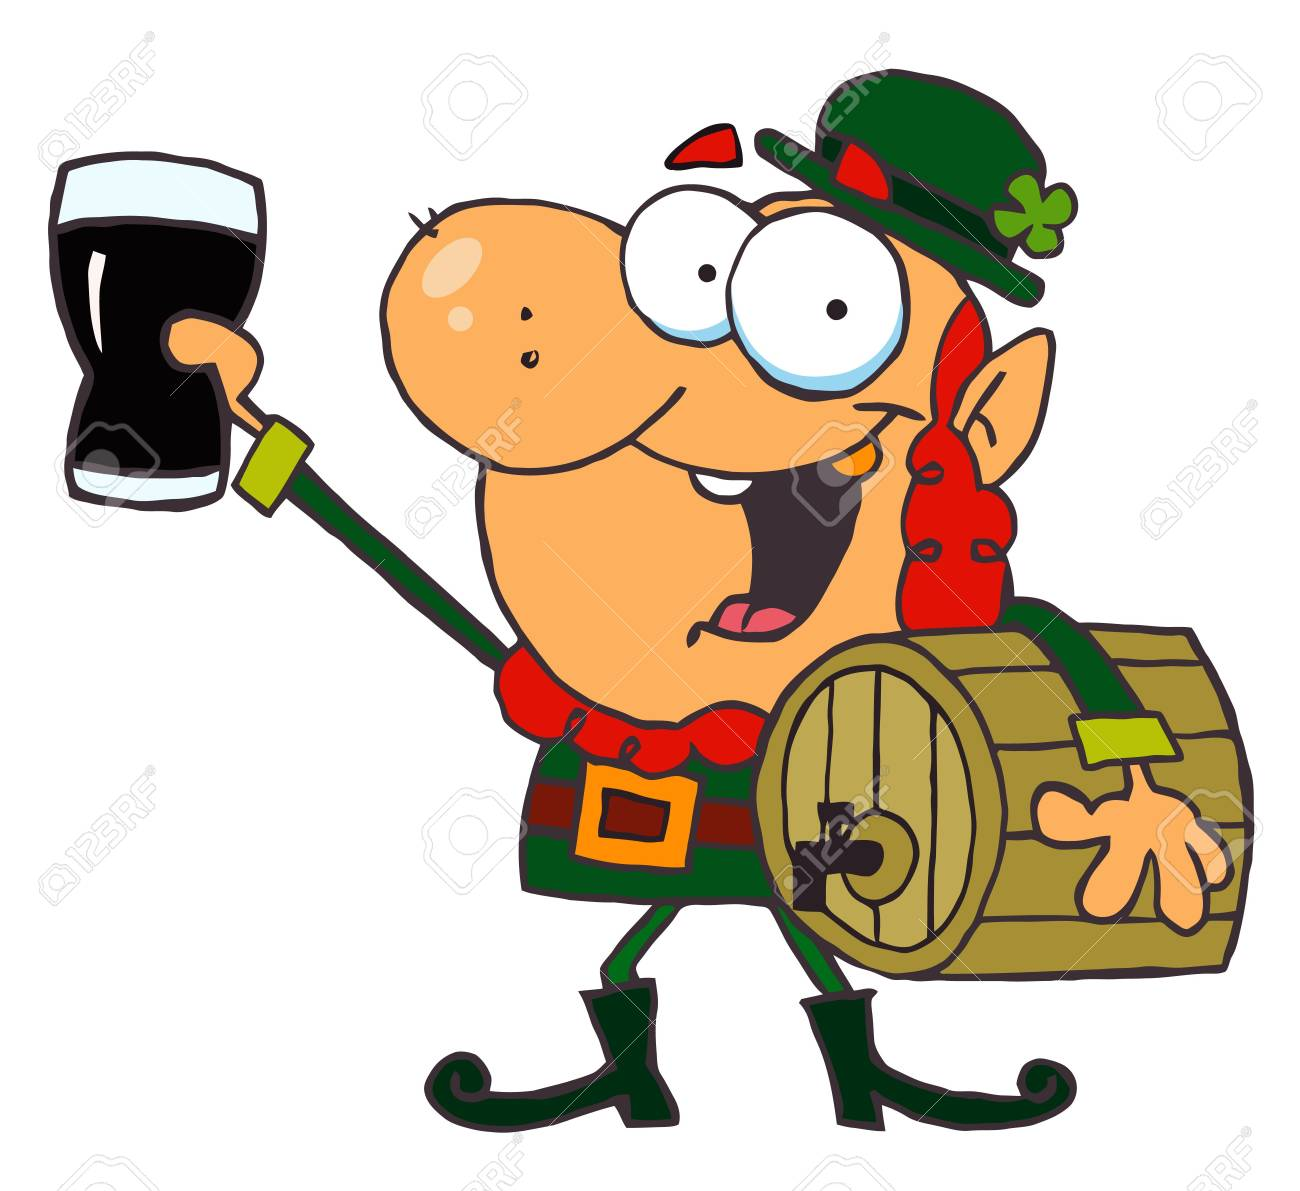 Lucky Leprechaun Toasting With A Glass And Carrying A Keg Stock Vector - 6906145